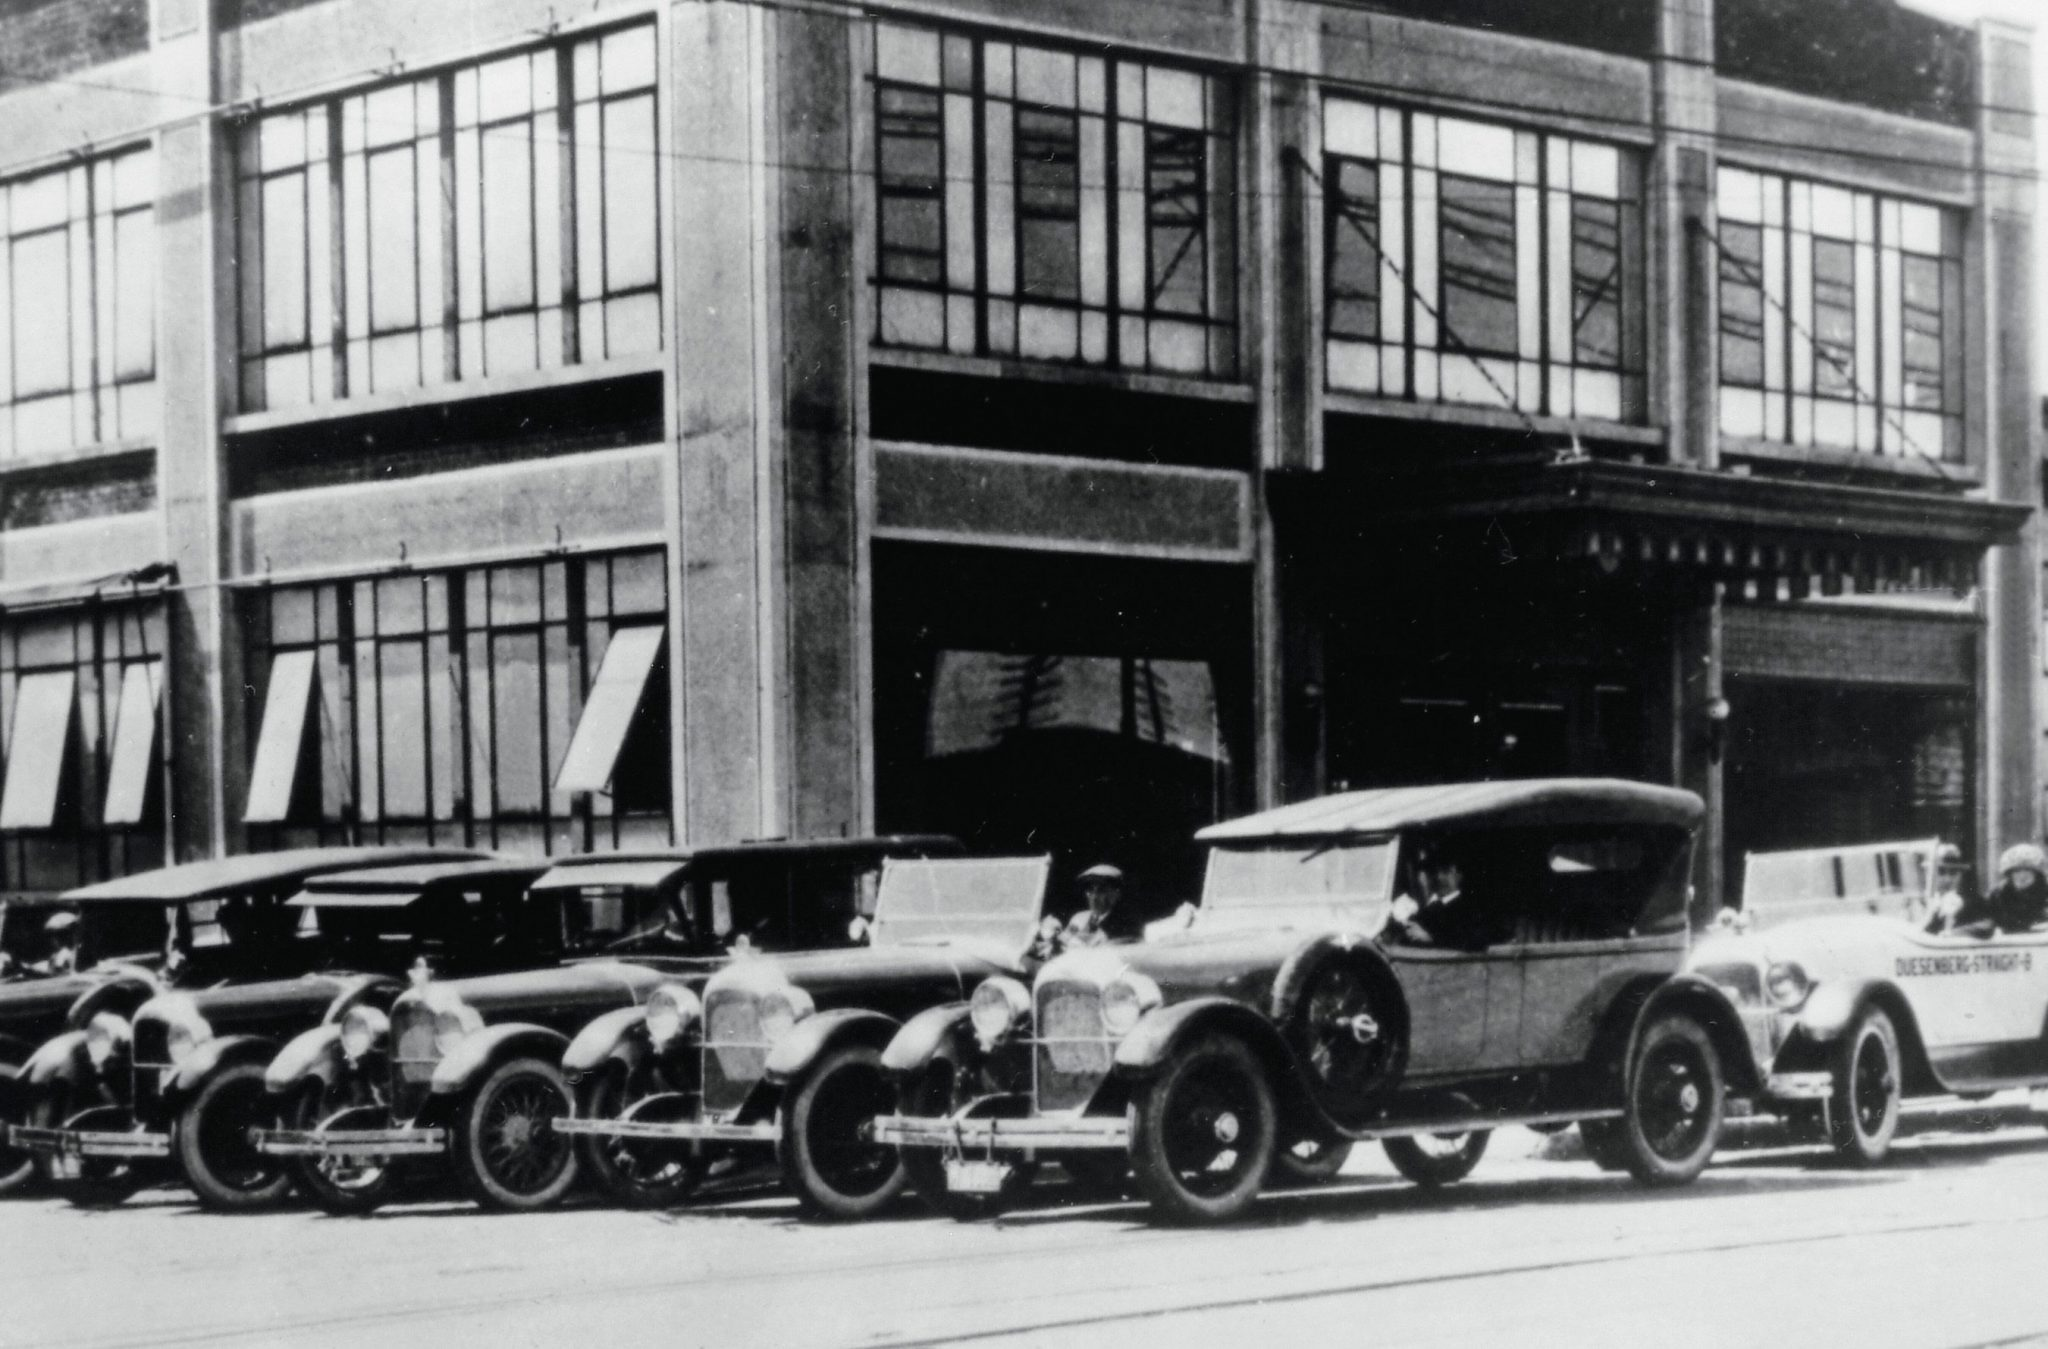 Publicity photos had become essential by 1923 when this shot was taken in front of the Duesenberg Company's main entrance on Washington and Harding Streets. Among the Model A body styles shown was the record setting phaeton (far right) that had completed three-weeks and 18,000 miles of endurance tests at the Indianapolis Motor Speedway, and then served as the pace car for the 500-mile Memorial Day classic in May.